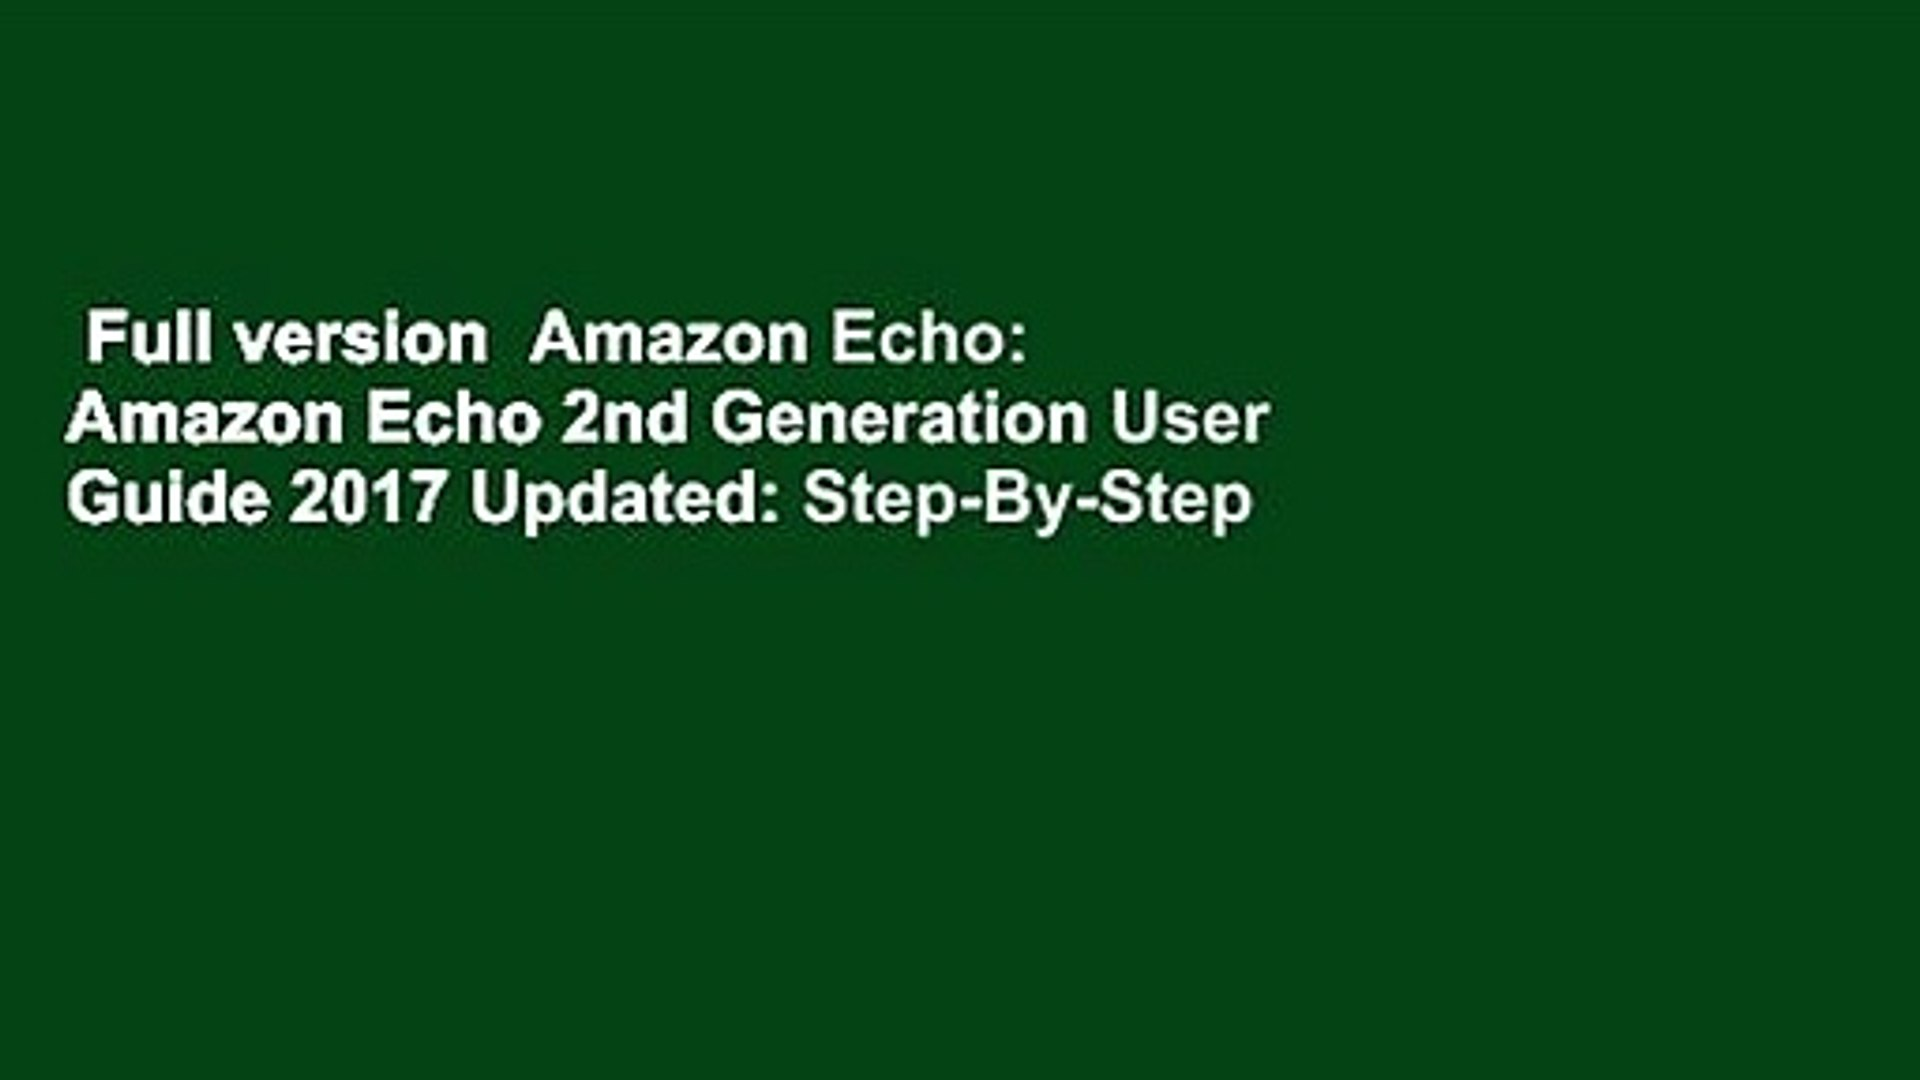 Full version  Amazon Echo: Amazon Echo 2nd Generation User Guide 2017 Updated: Step-By-Step